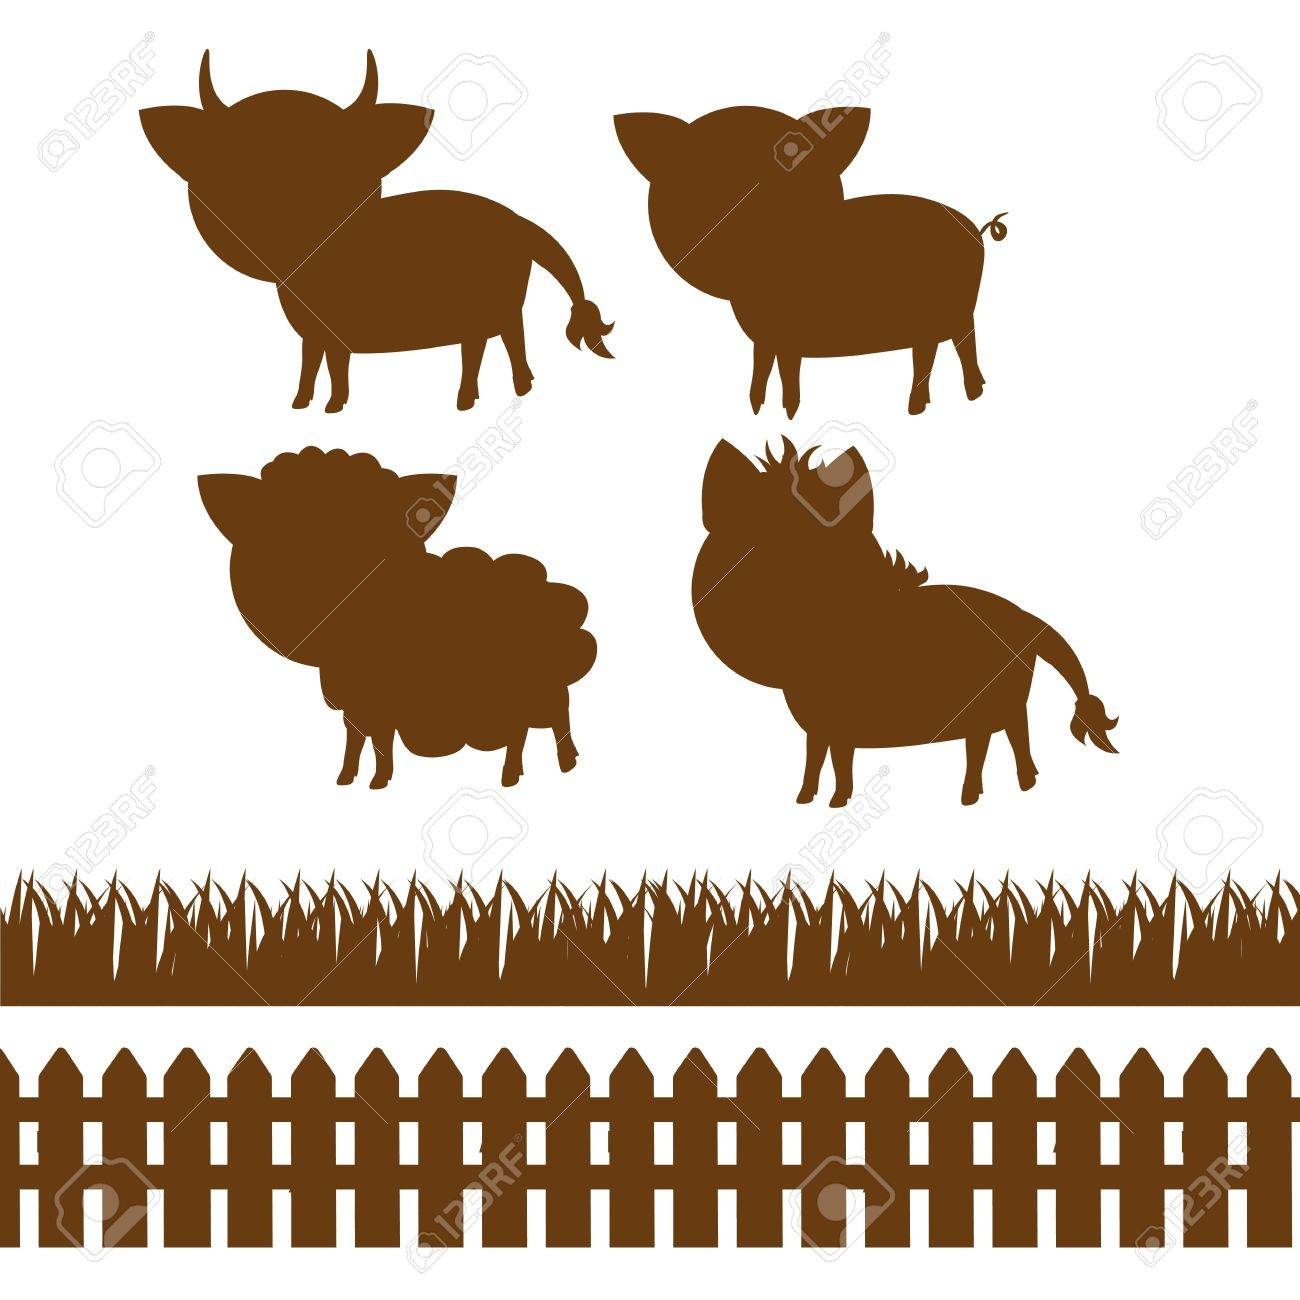 Farm Fence Clipart set of silhouettes of farm animals, wooden fence and grass royalty